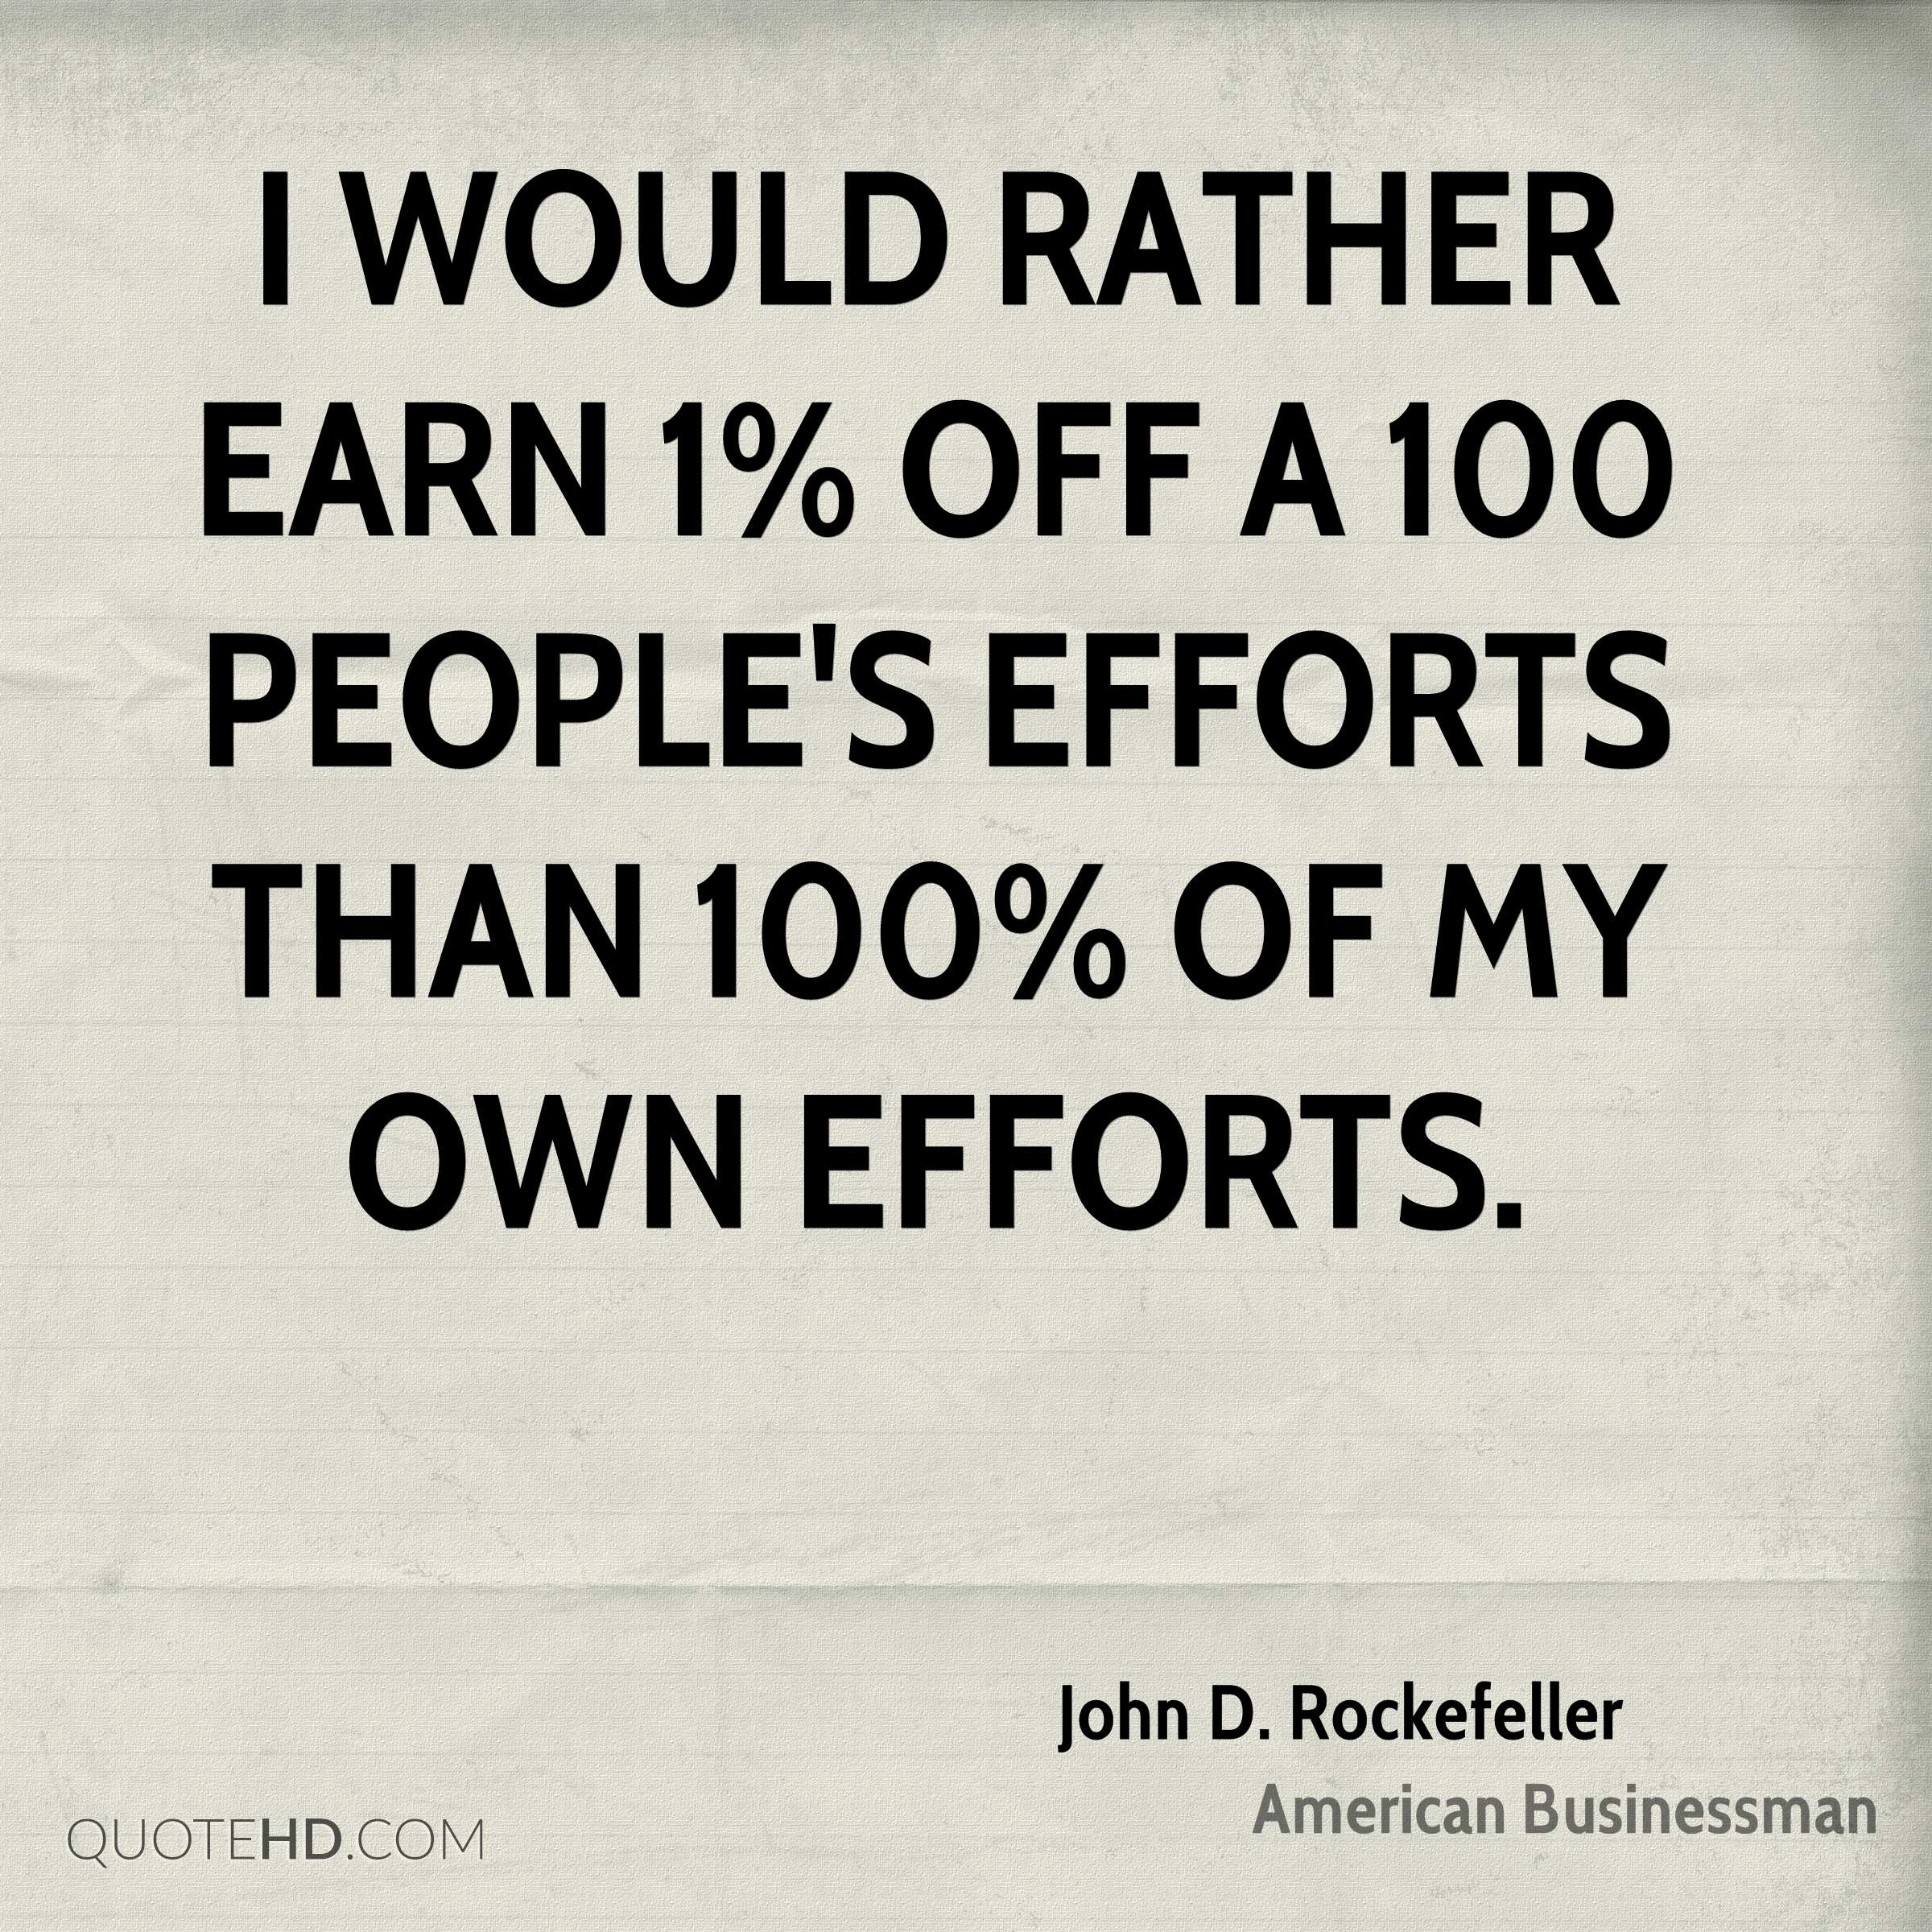 I would rather earn 1% off a 100 people's efforts than 100% of my own efforts.